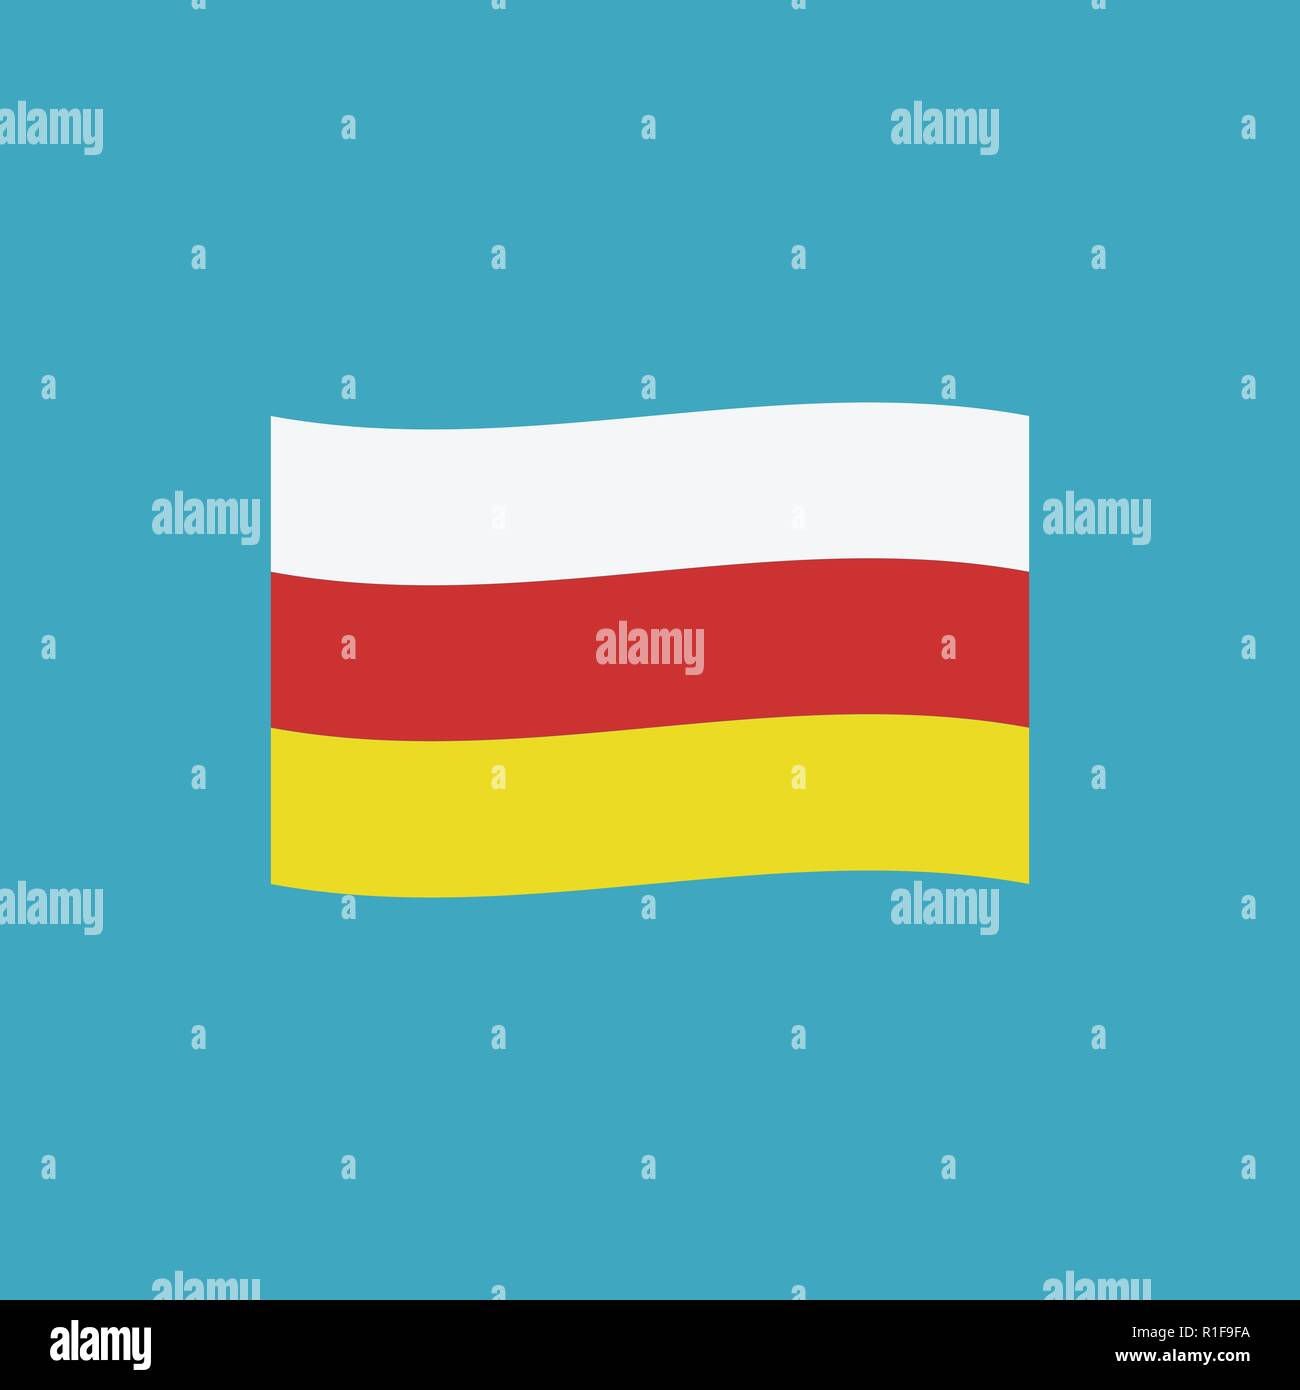 South Ossetia flag icon in flat design. Independence day or National day holiday concept. - Stock Image